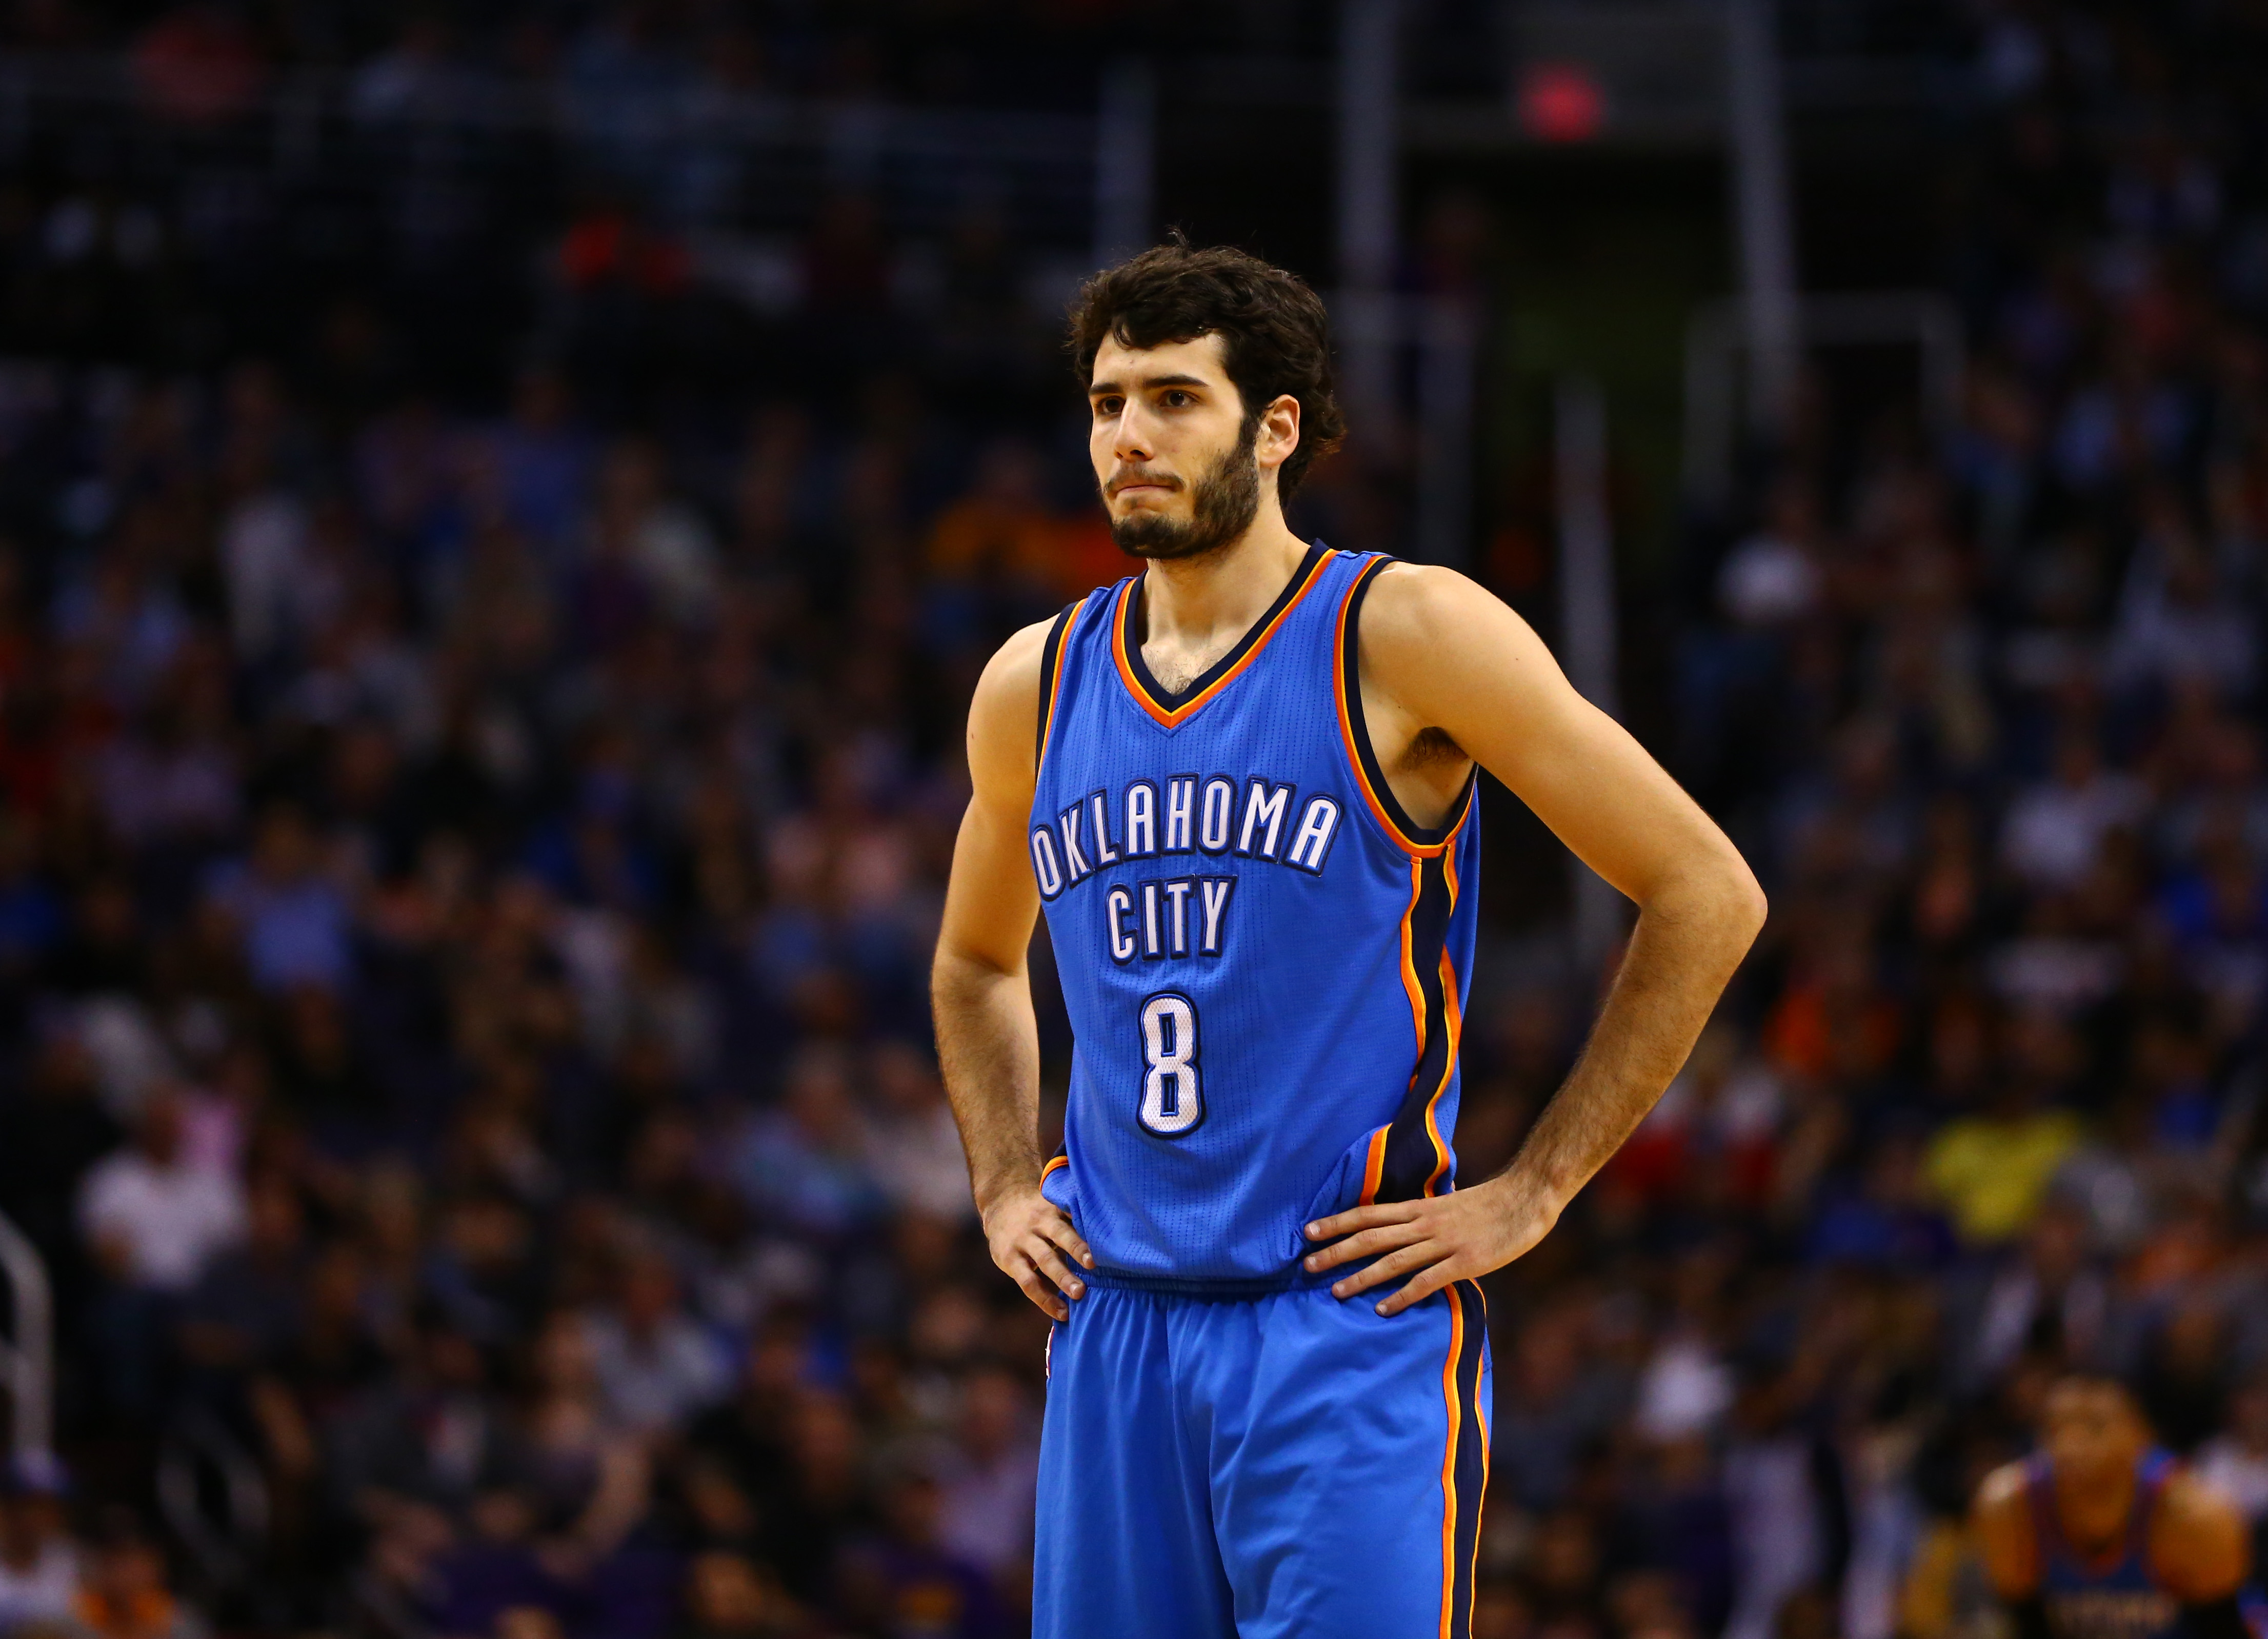 Reviewing Alex Abrines' rookie season with the OKC Thunder